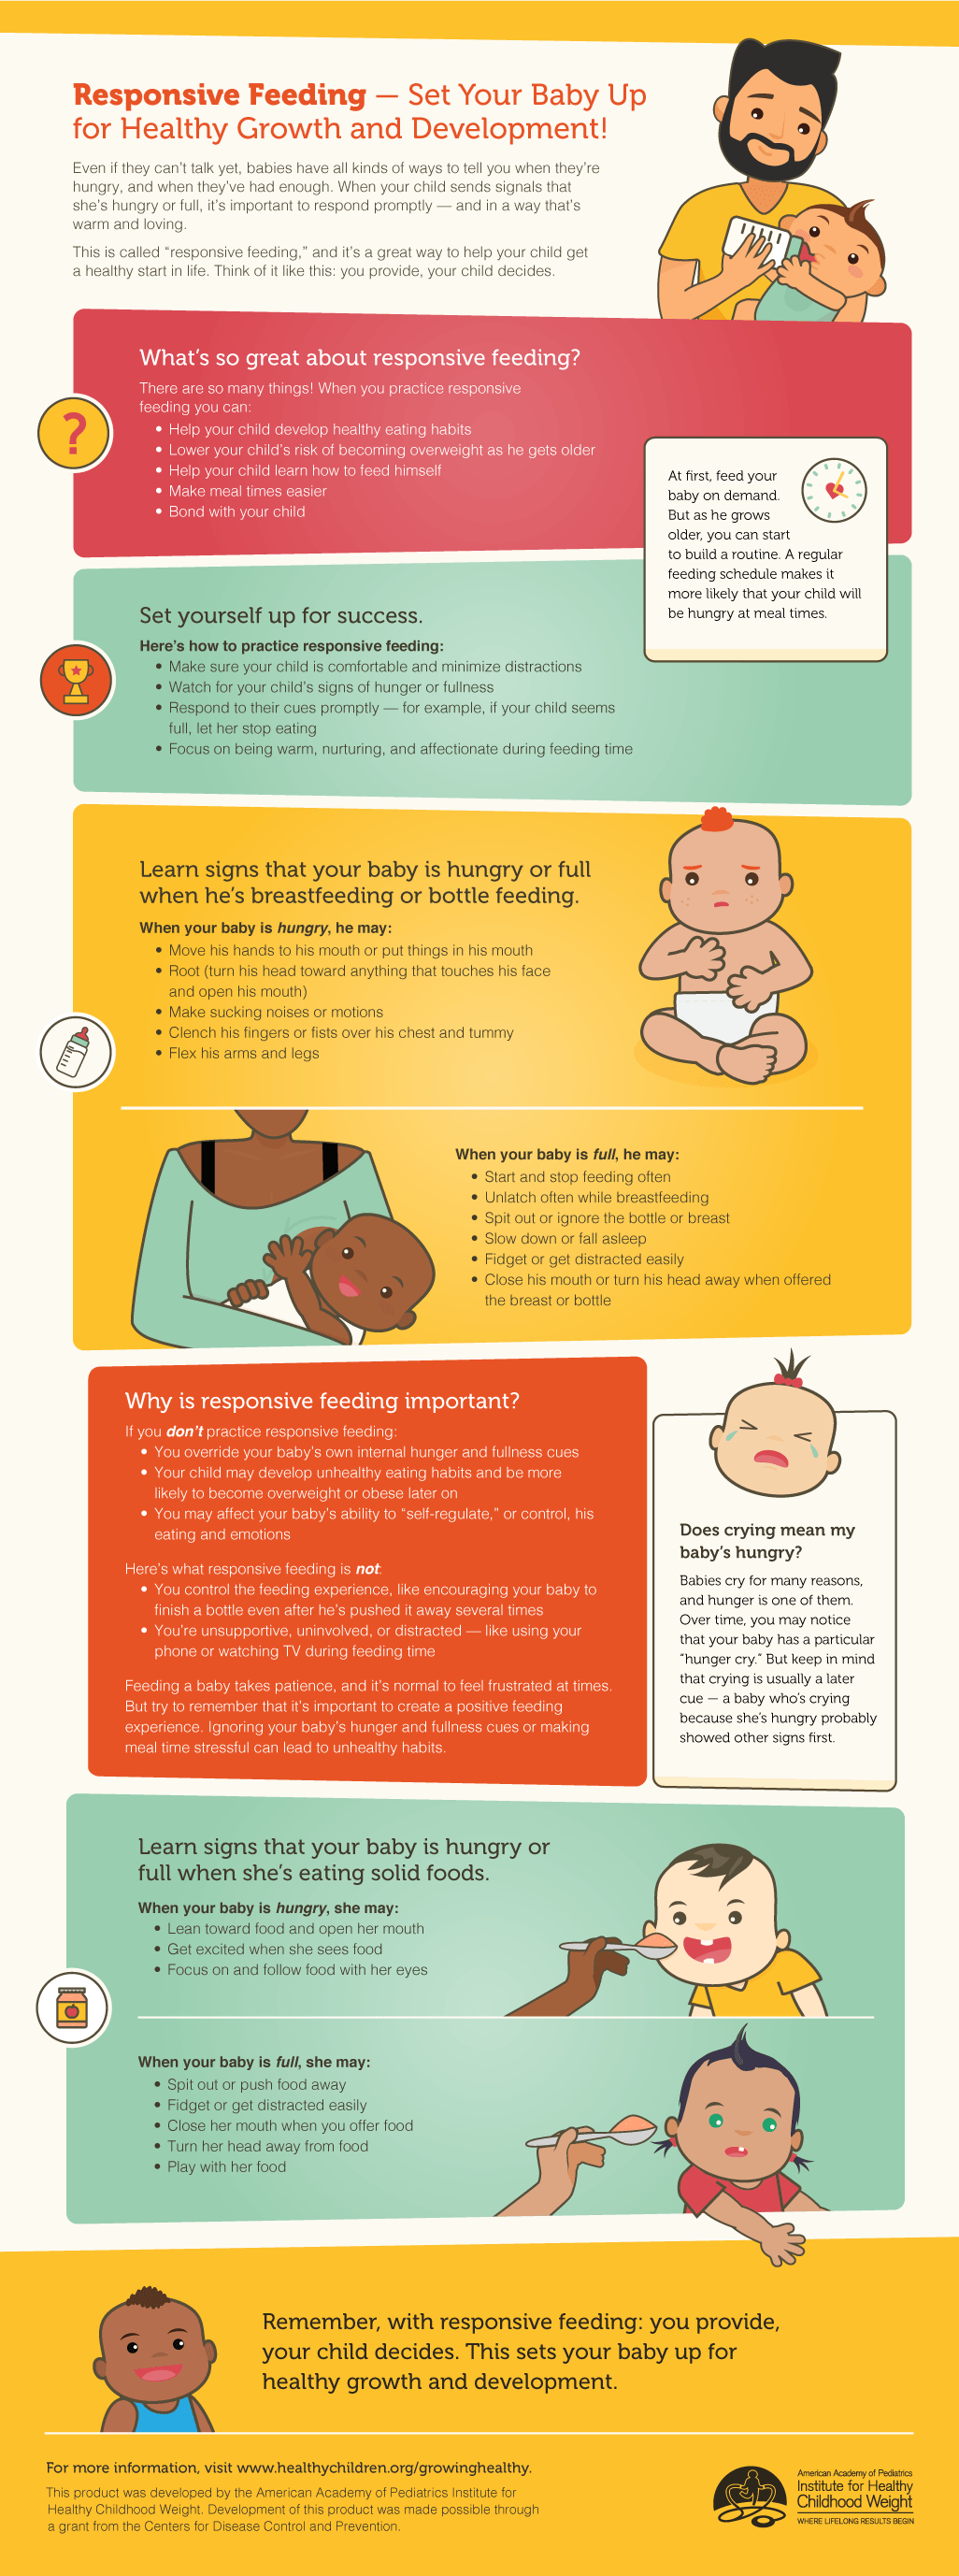 Is Your Baby Hungry or Full? Responsive Feeding Explained